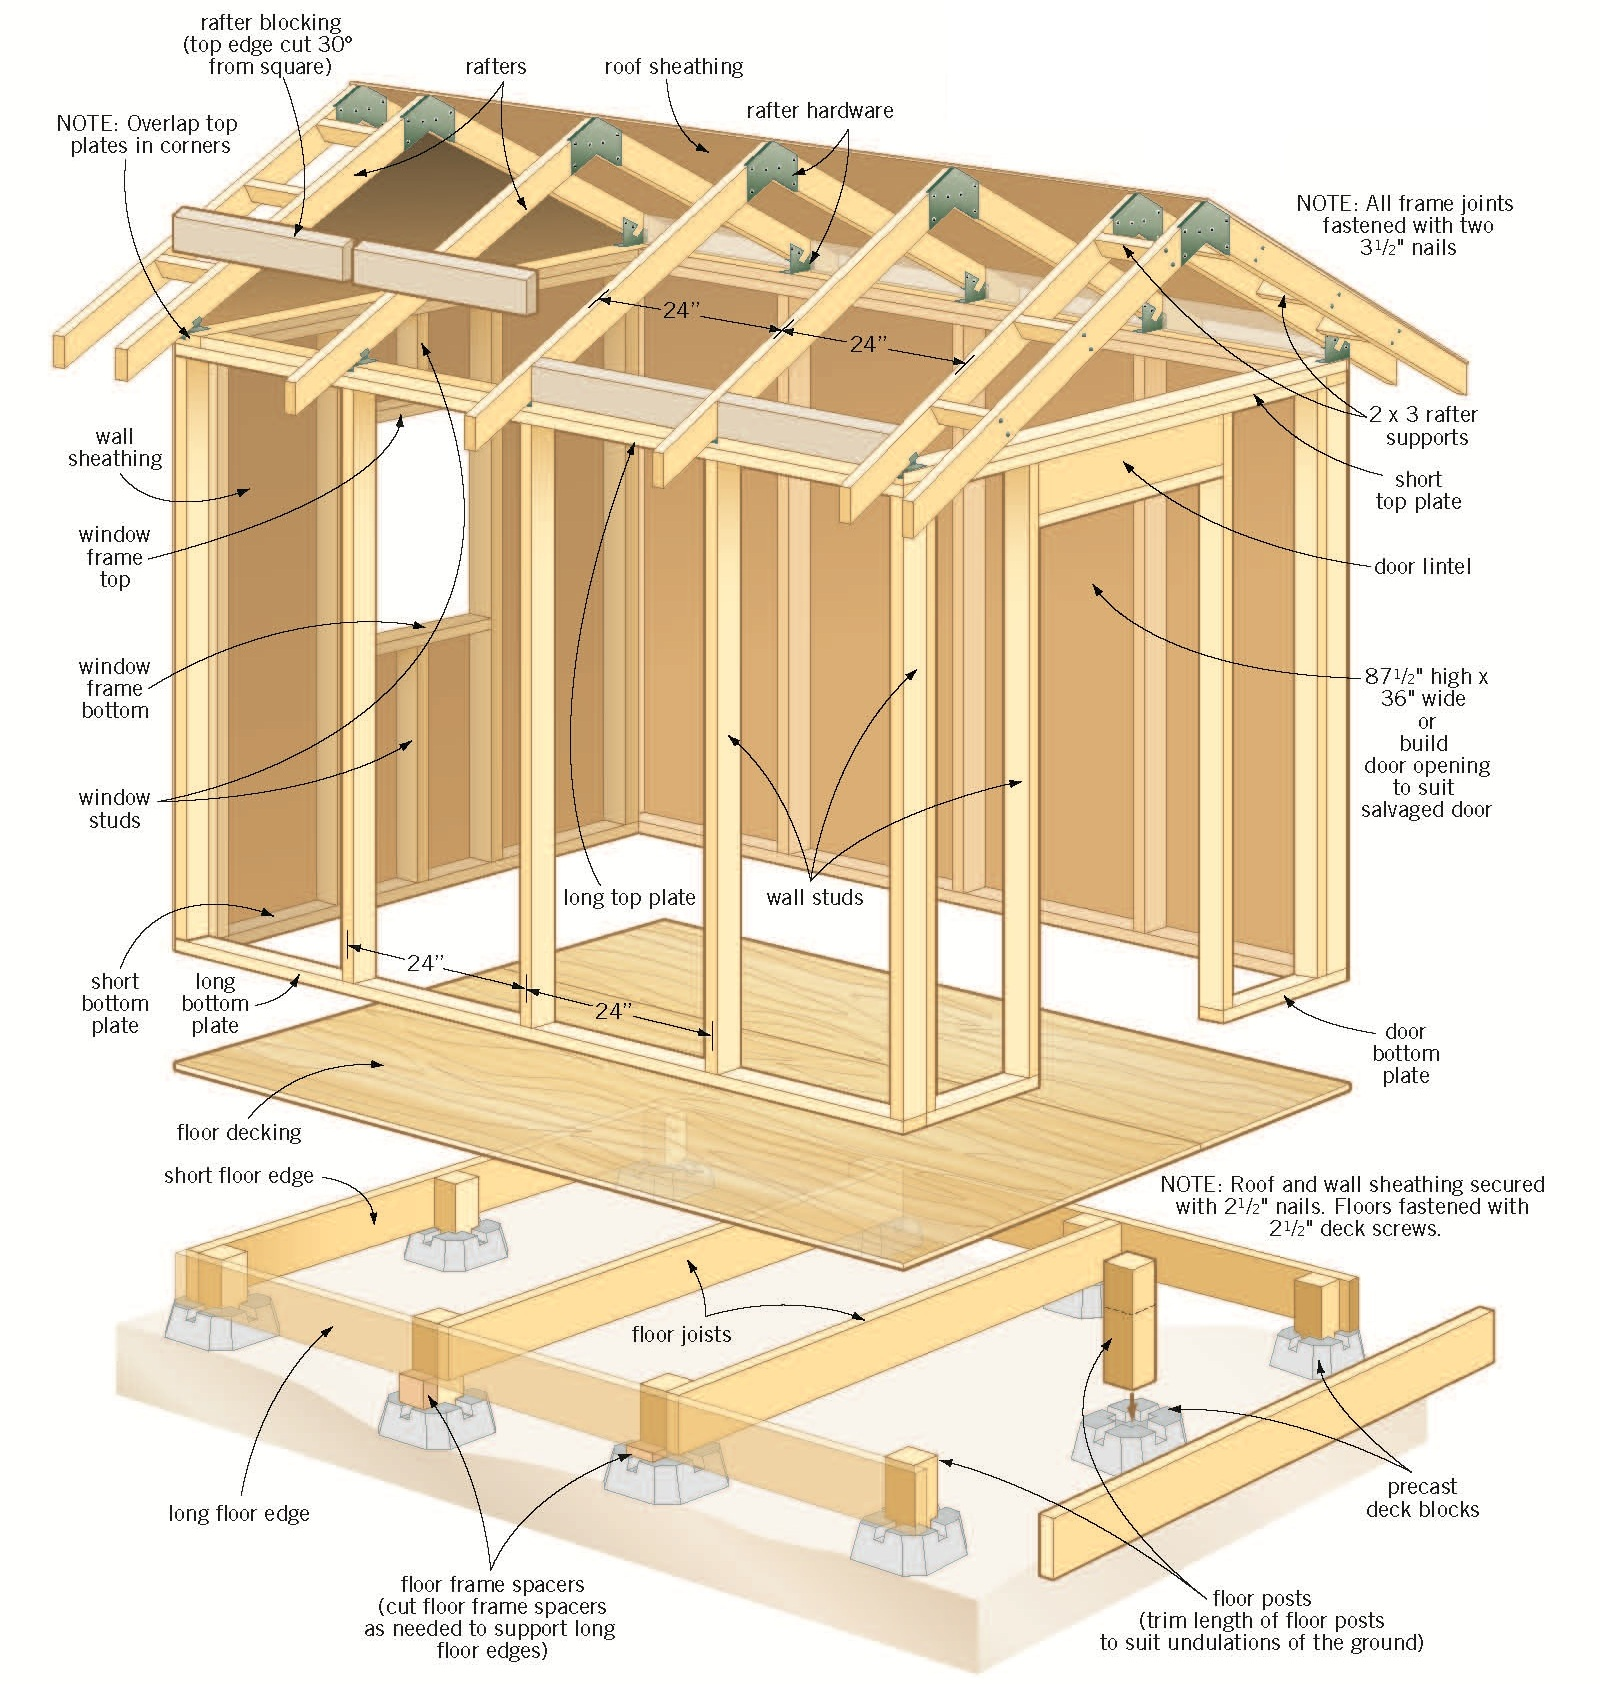 10x10 storage shed plans free download